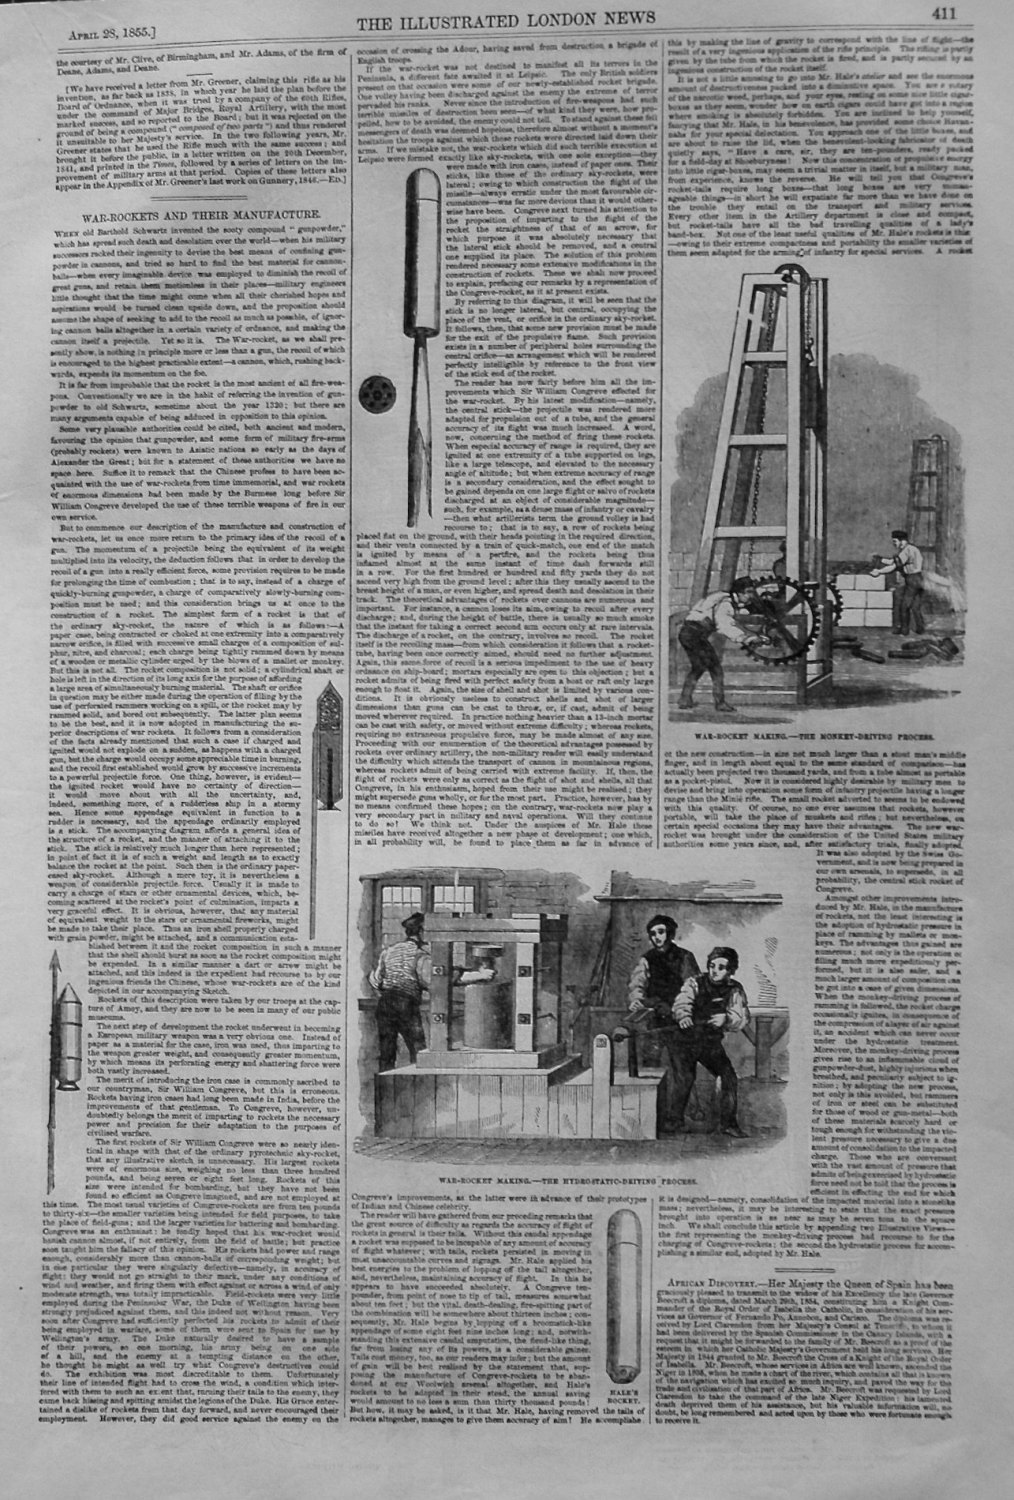 War-Rockets and their Manufacture, and The Minie Rifle. 1855